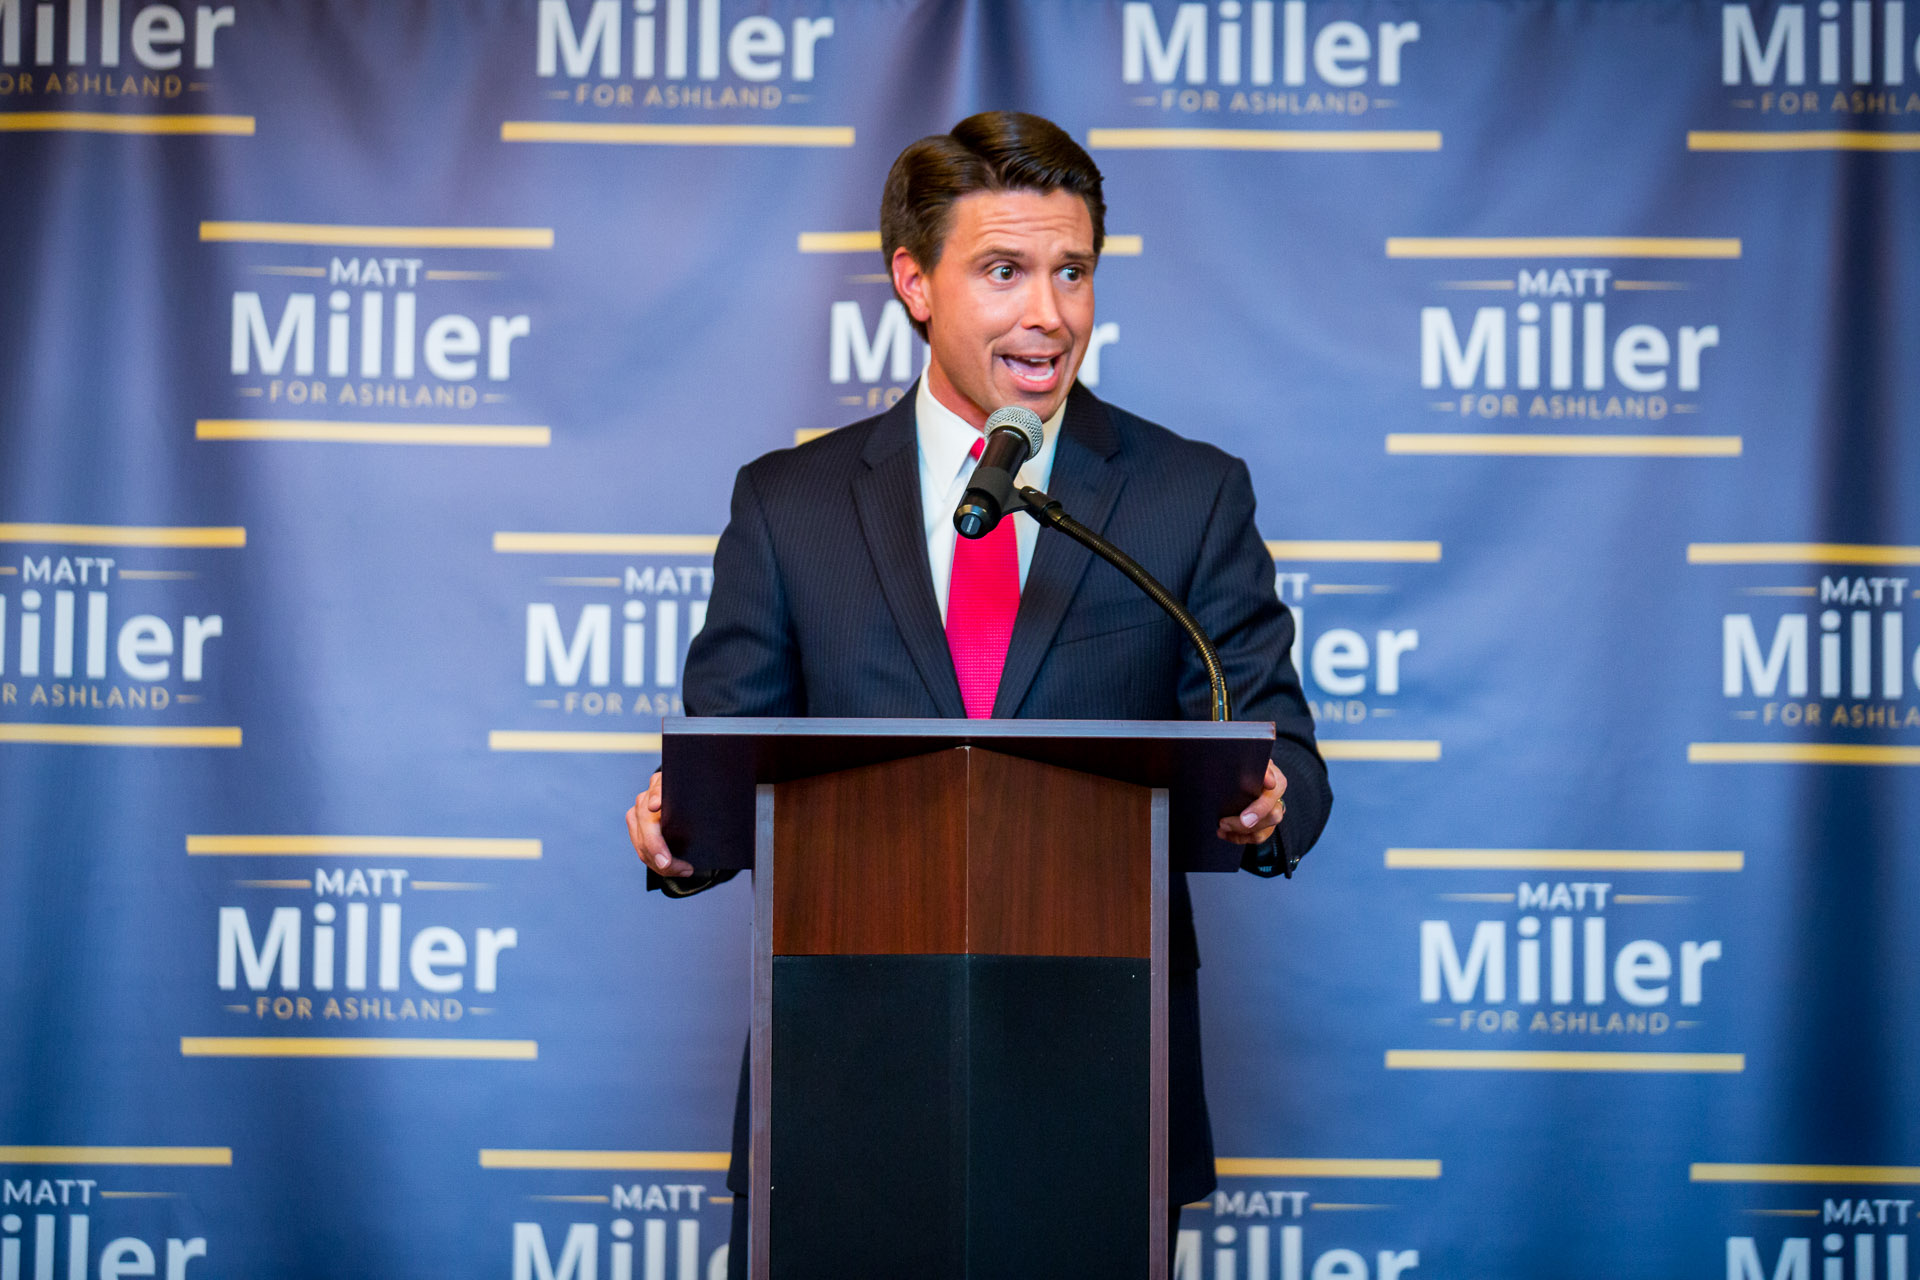 Matt Miller Announces His Vision for Our City